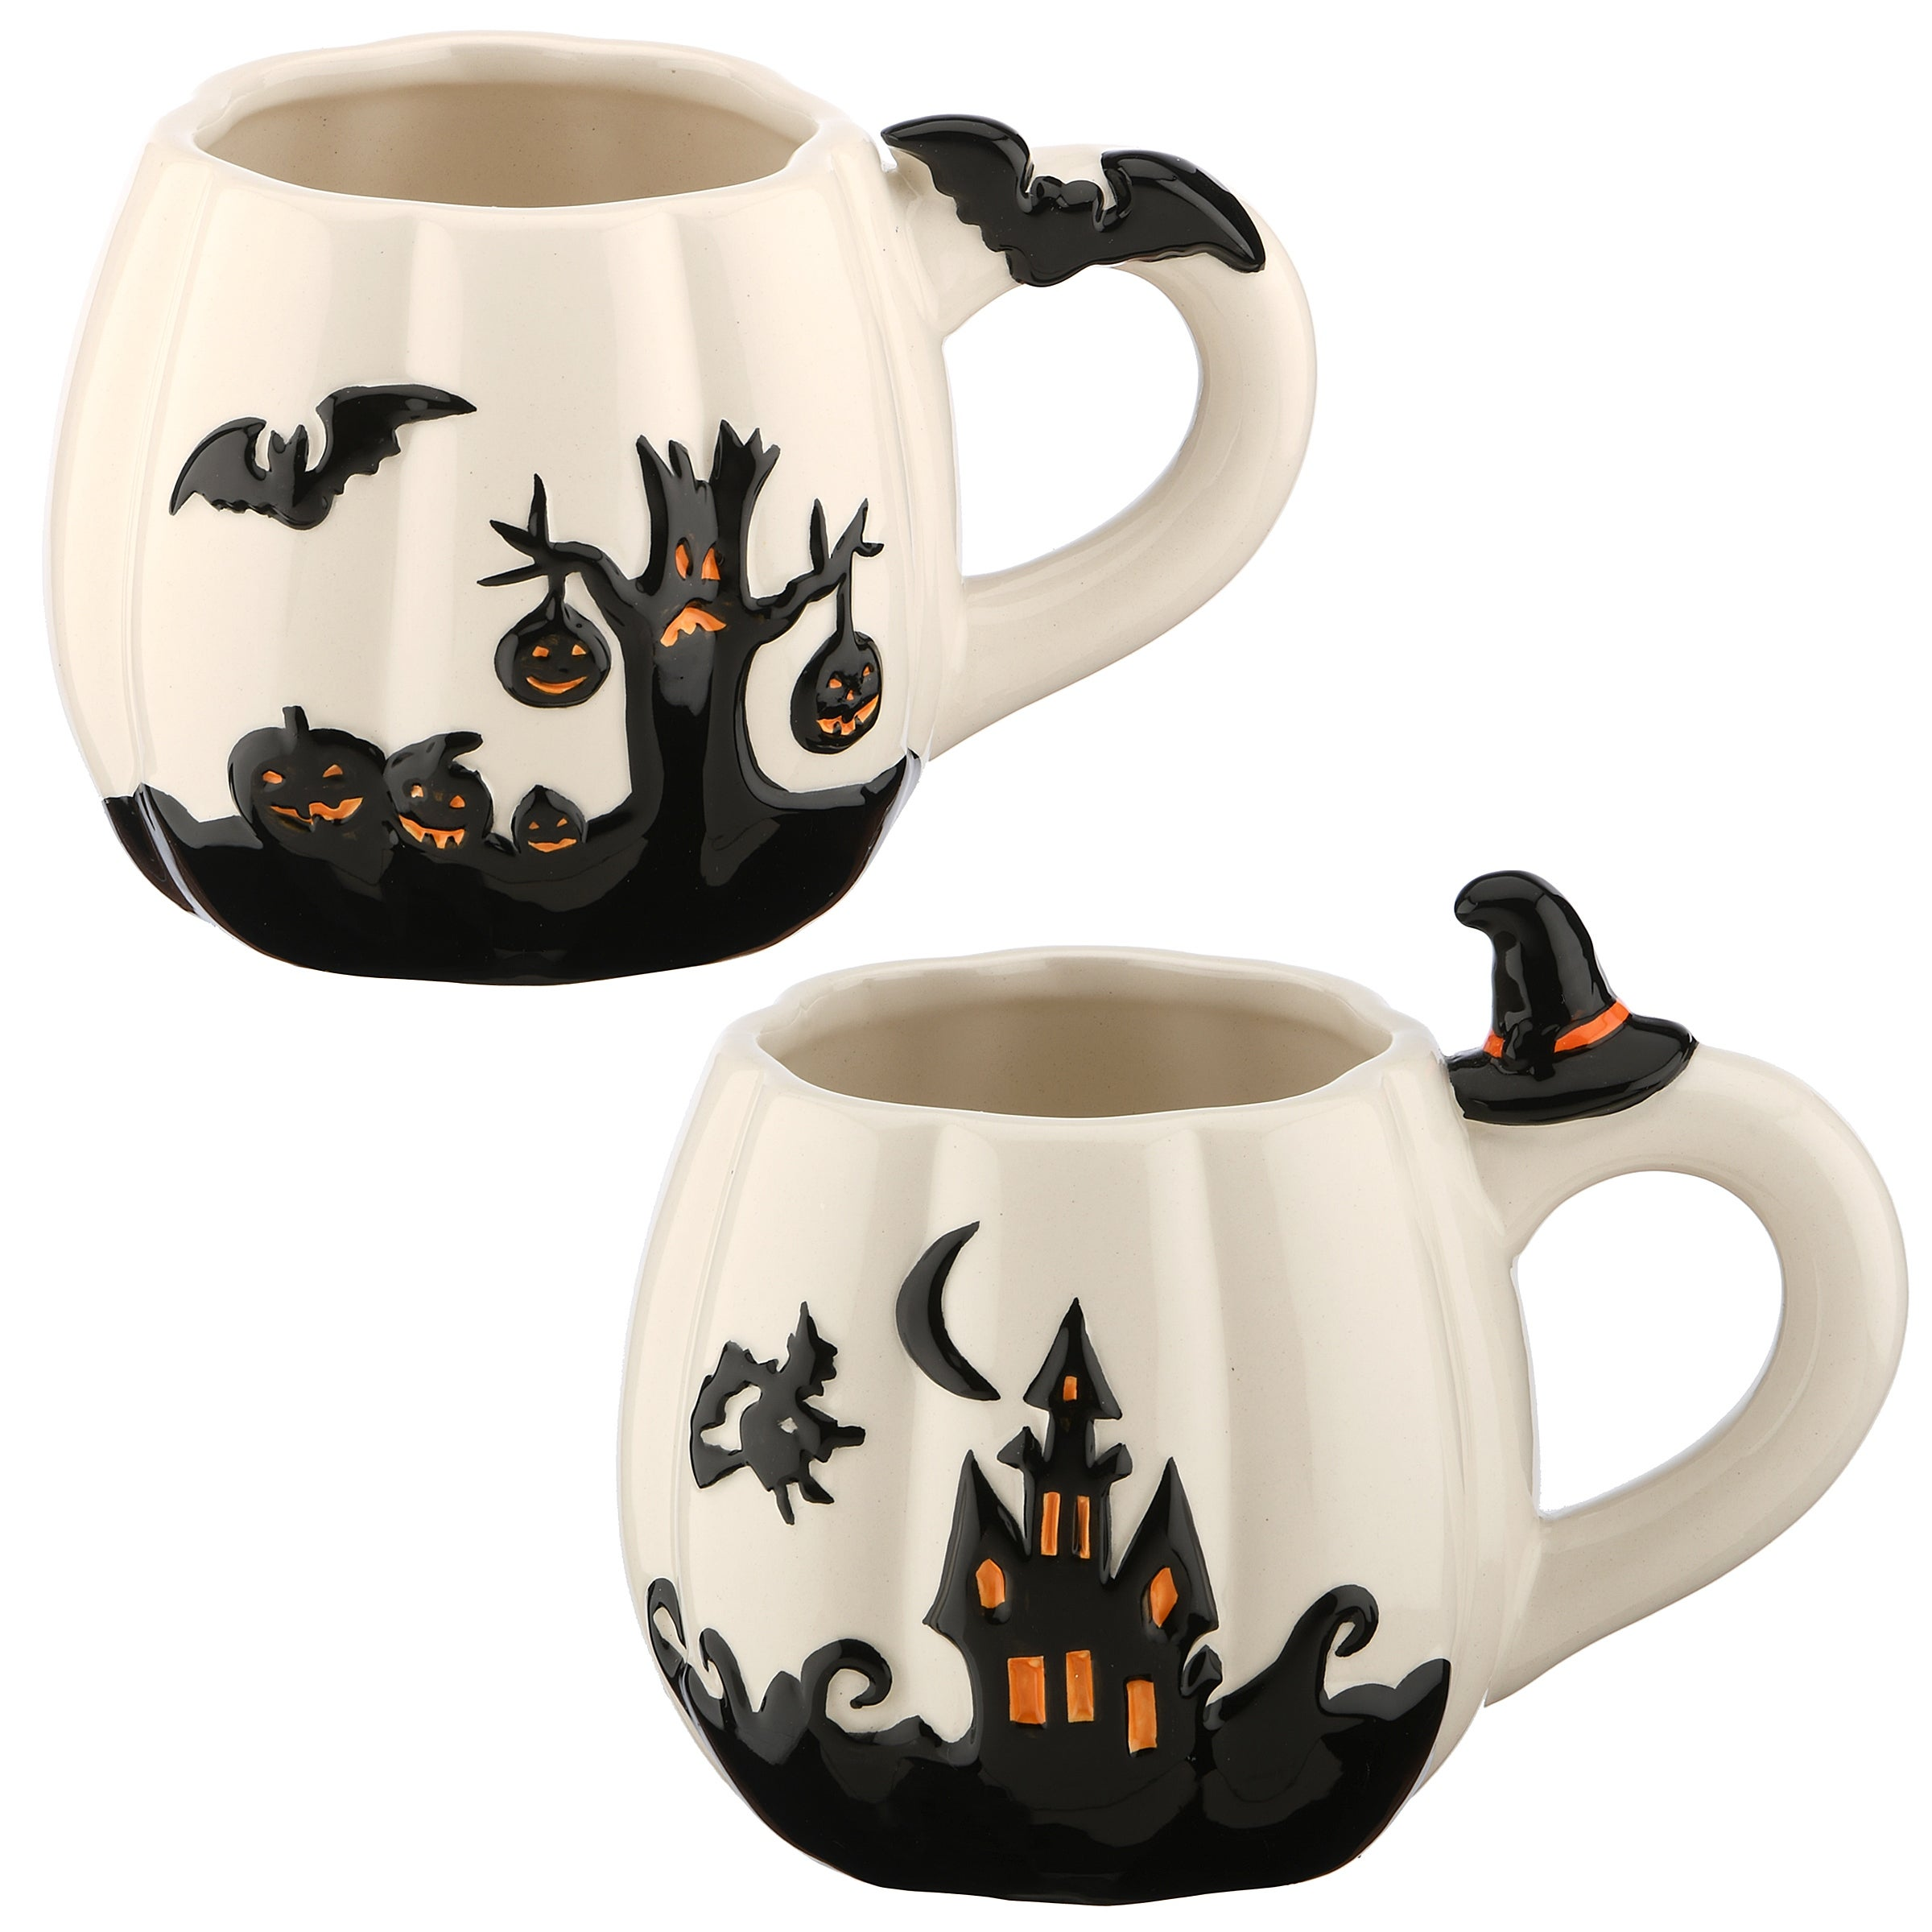 Halloween Themed Coffee Mugs Overstock 31473083